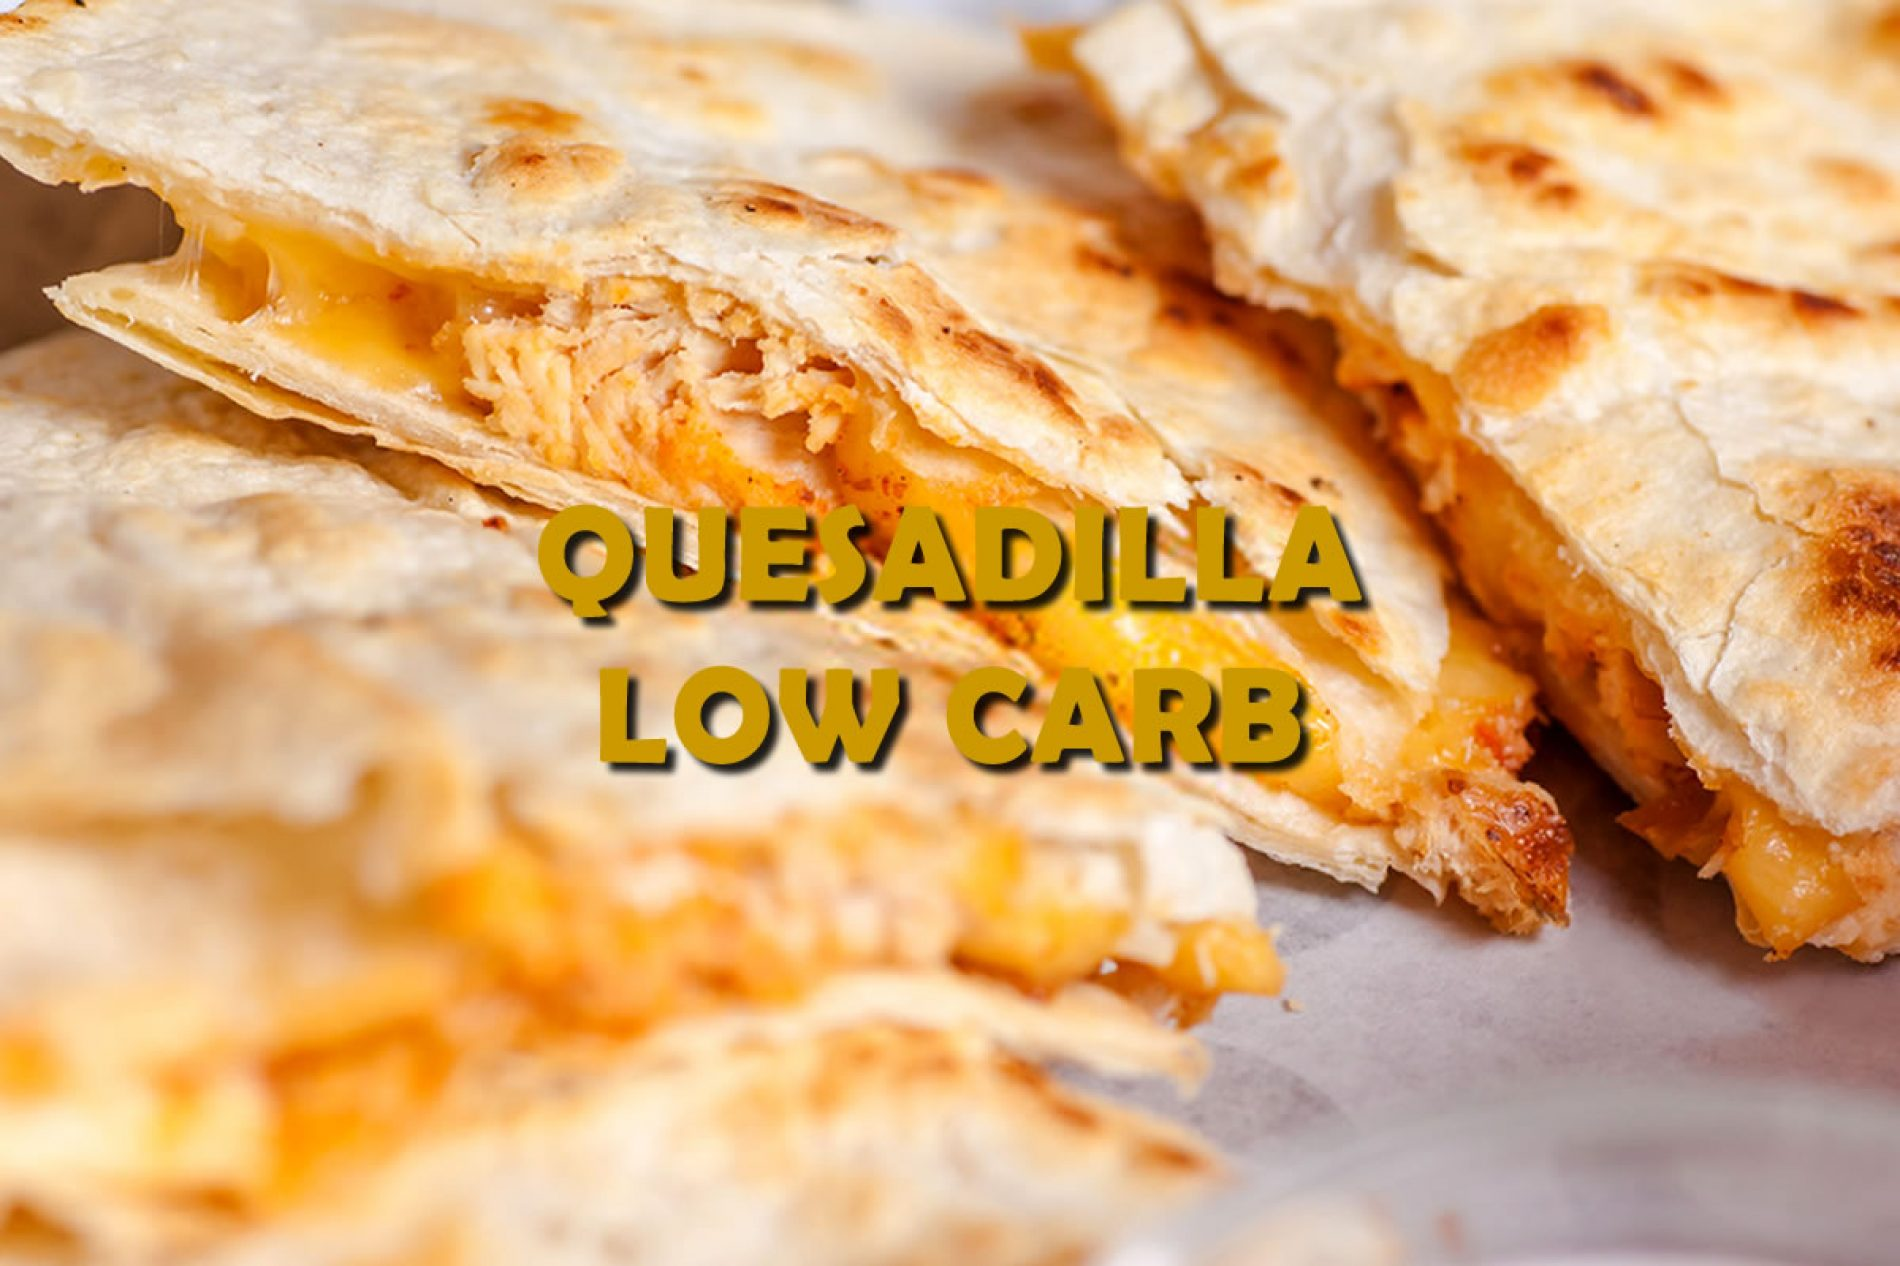 Quesadillas FIT de queijo Low Carb